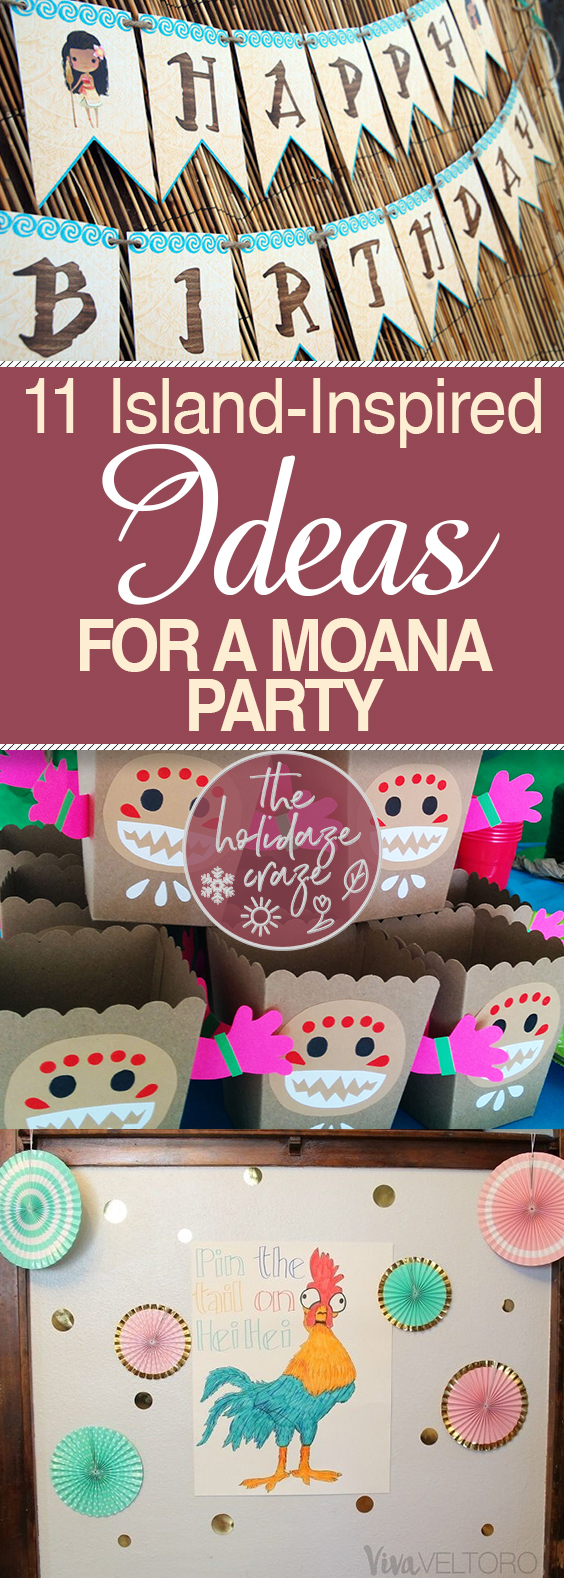 11 Island-Inspired Ideas for a Moana Party| Party Ideas, Party Ideas for Kids, Moana, Moana Party, Moana Party Ideas, Moana DIYs, Parties for Kids, Birthday Parties for Girls, Birthday Parties for Boys, Homemade Party Decor, DIY Moana Party, Themed Birthday, Themed Birthday Party Ideas